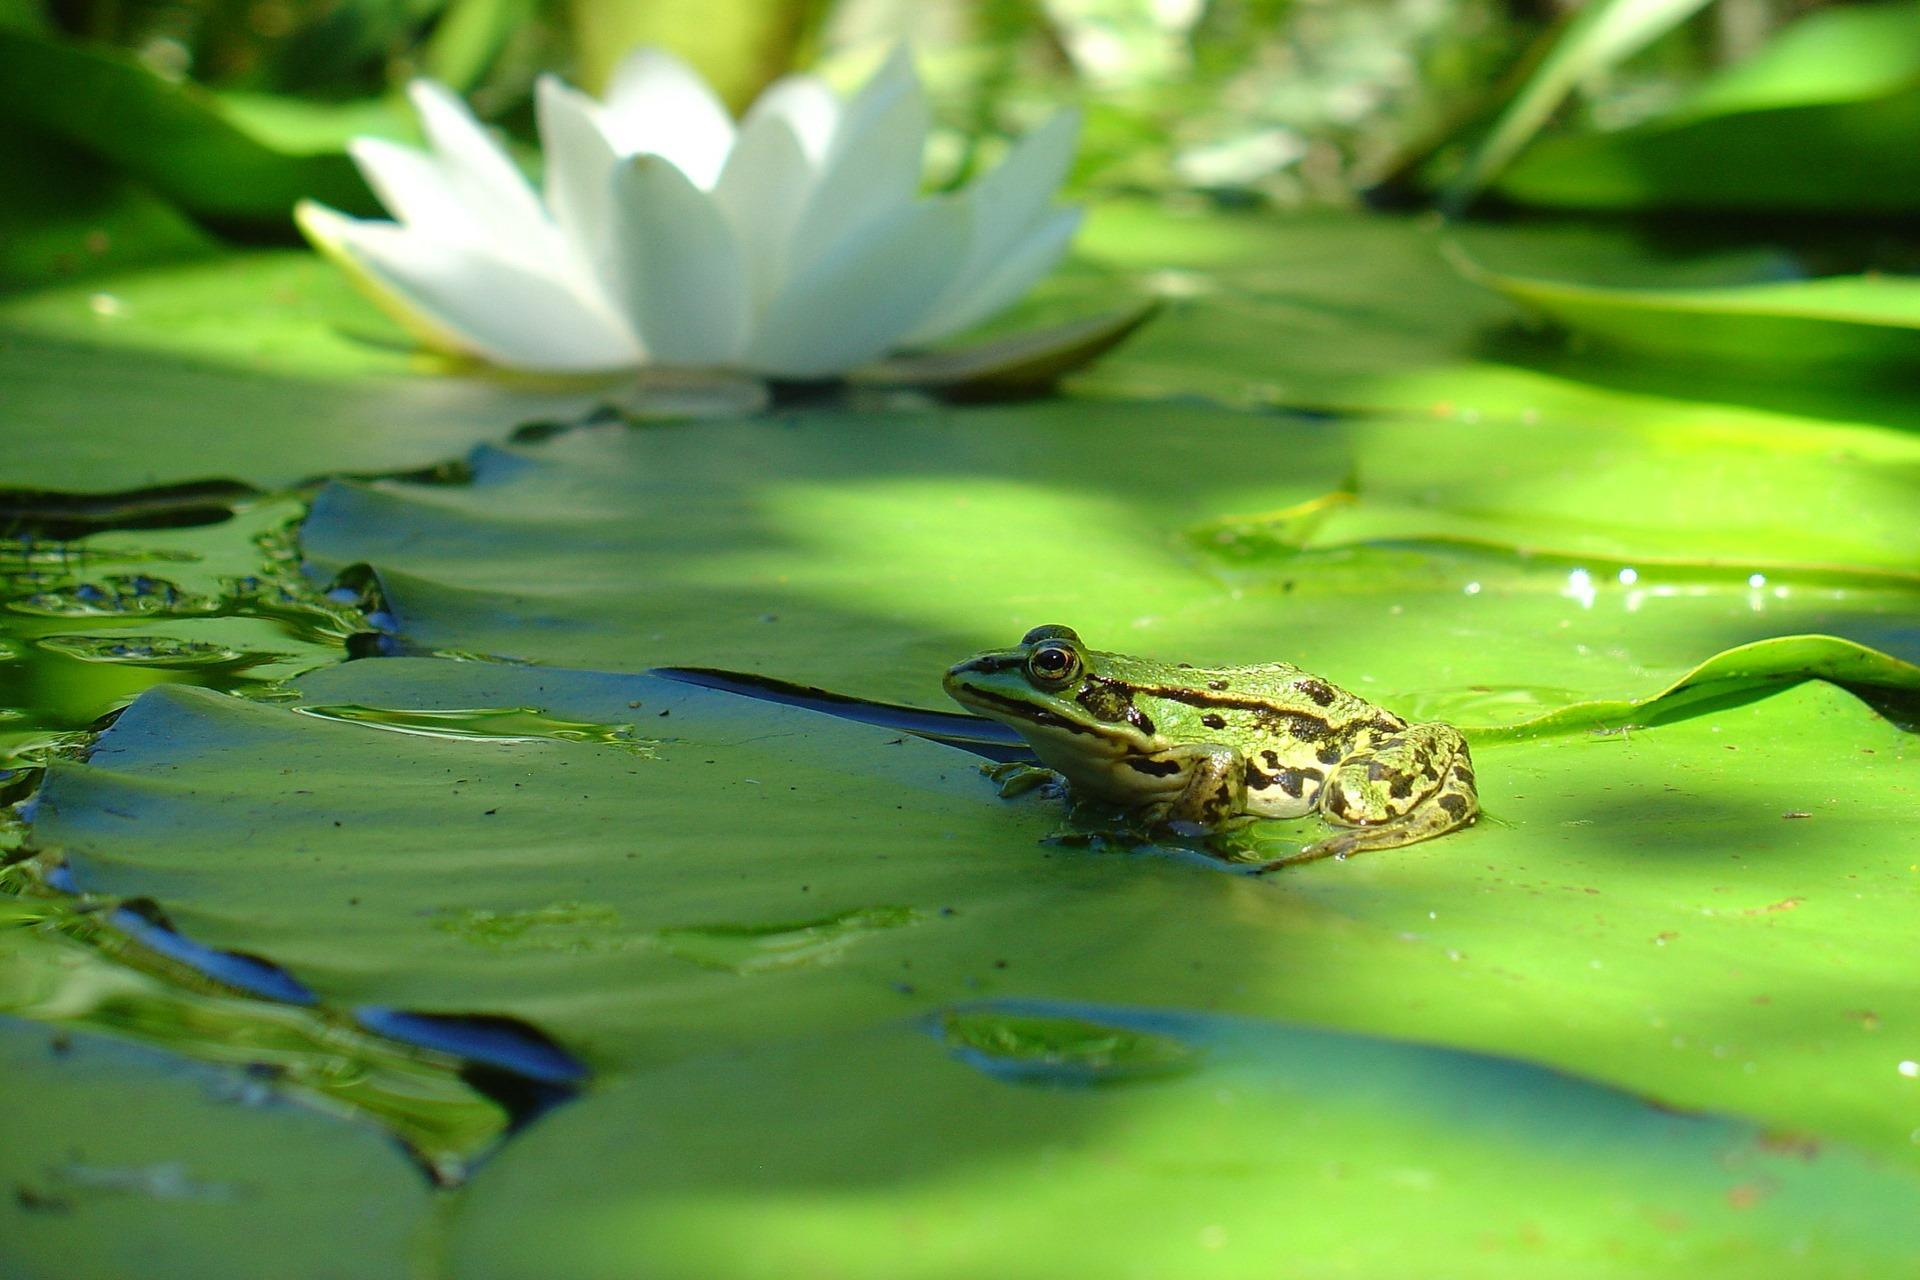 grenouille-et-nenuphars-photographie-HD_1